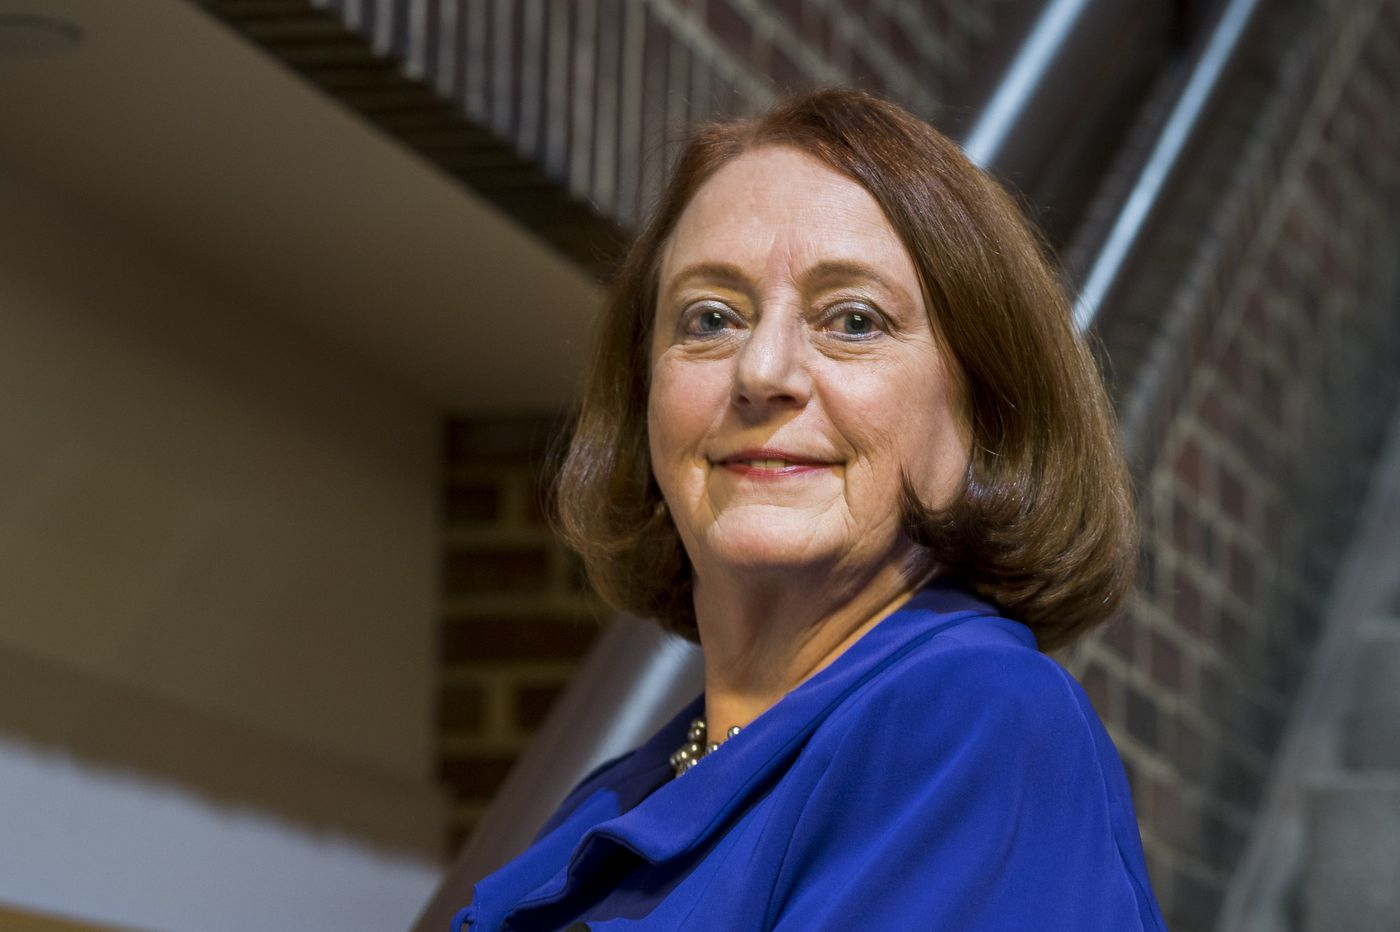 Wharton professor Olivia Mitchell on America's post-COVID retirement outlook: An Inquirer Q&A